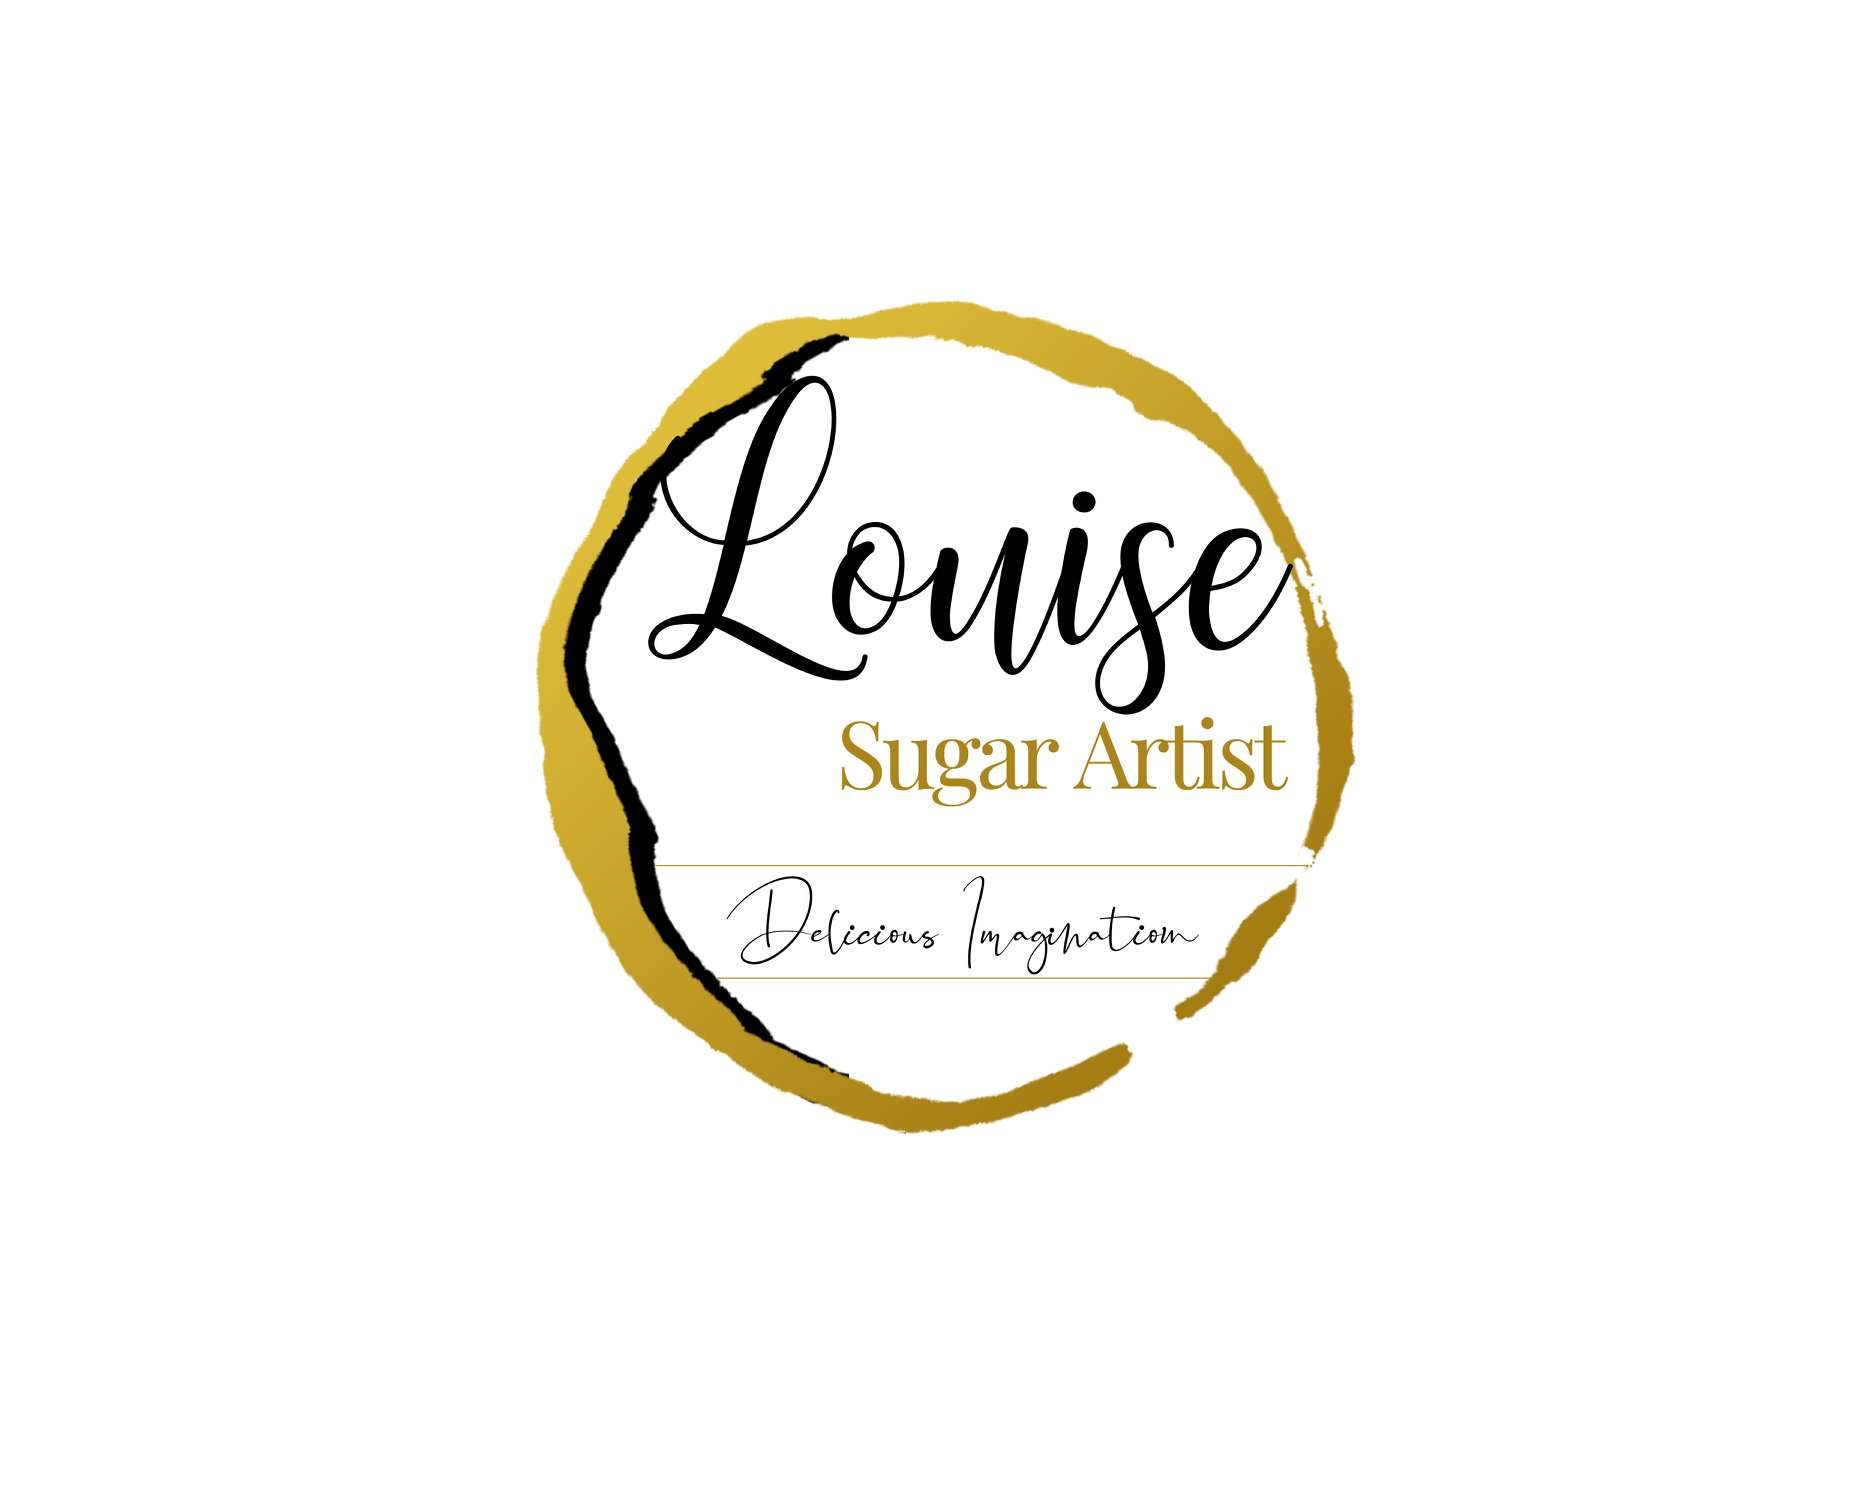 The Little Love Knot Bakery, www.louisesugarartist.com